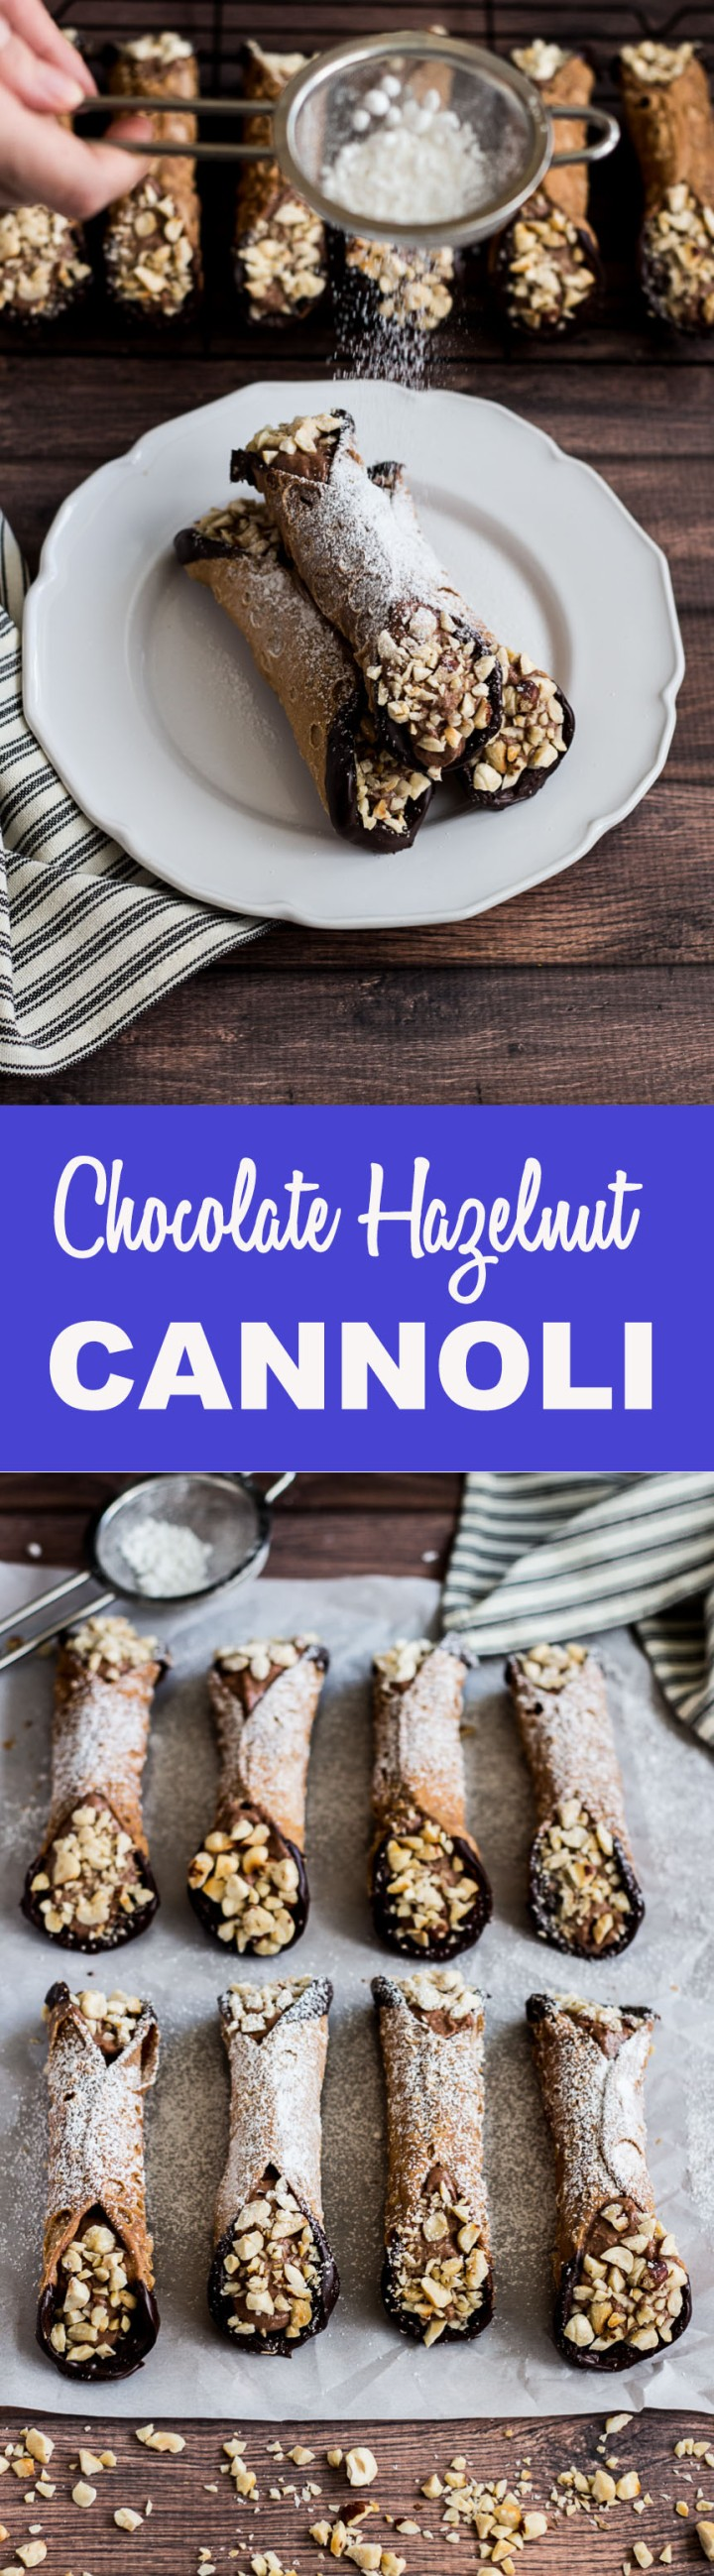 Chocolate Hazelnut Cannoli #Perugina #Colavita #Chocolate #Dessert #JoinTheTable